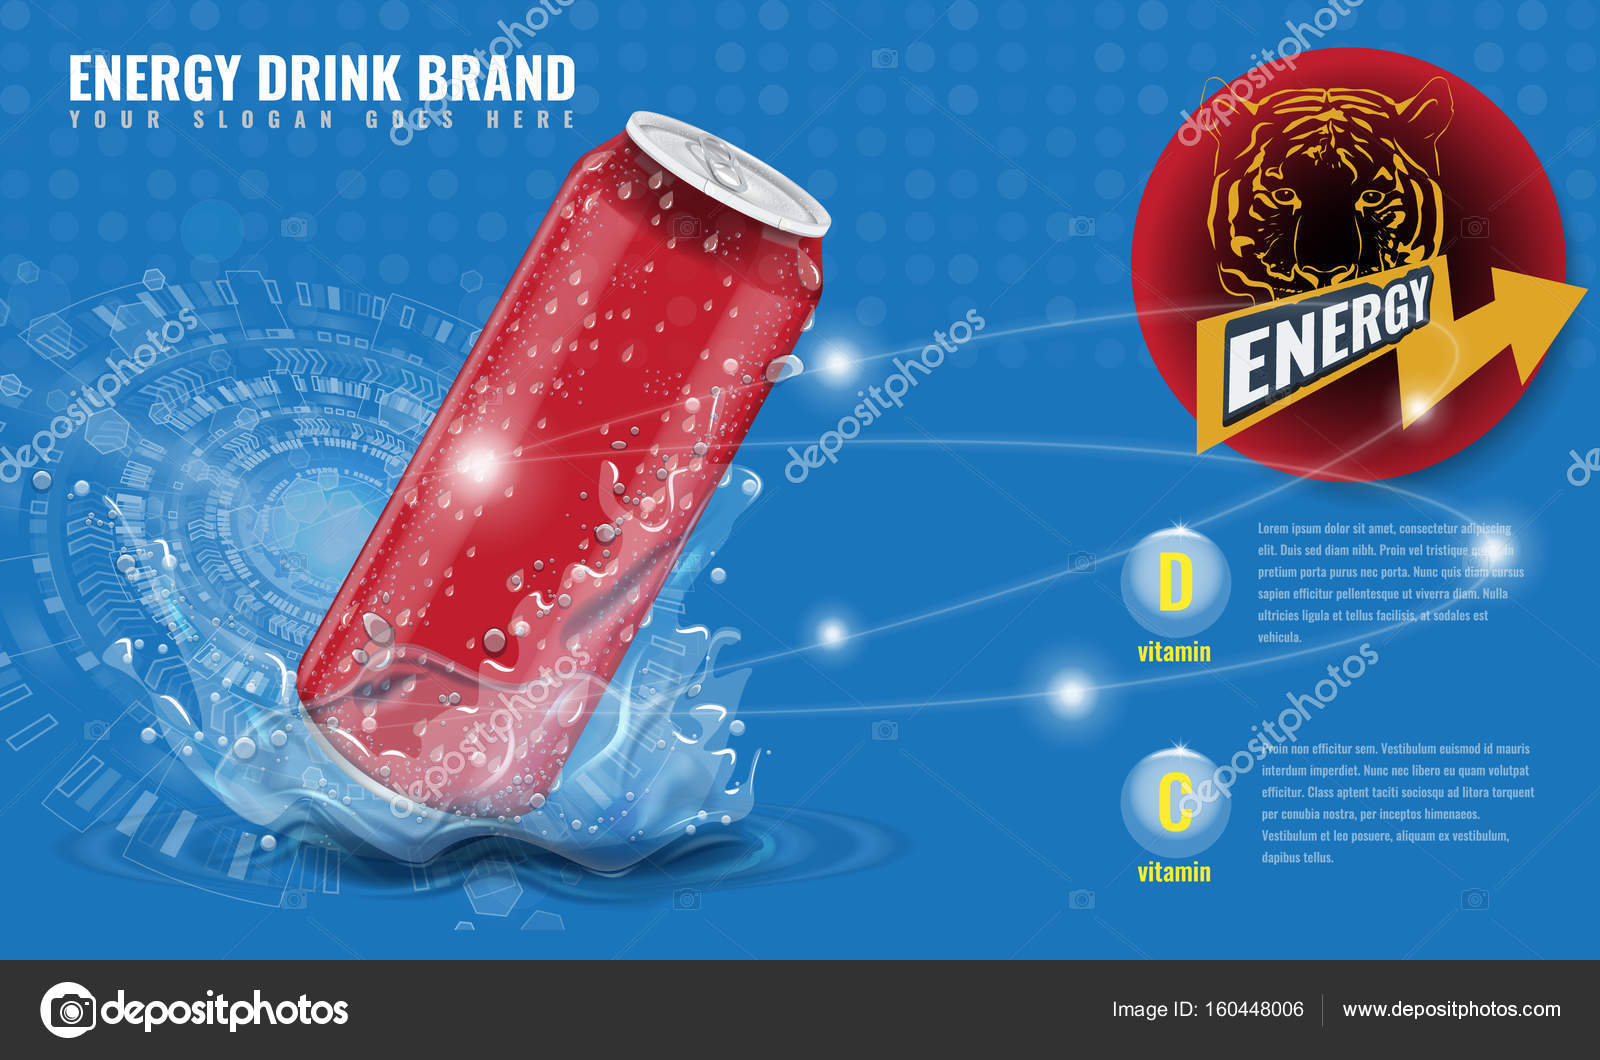 Energy drink metal can mockup with water splash and drops for